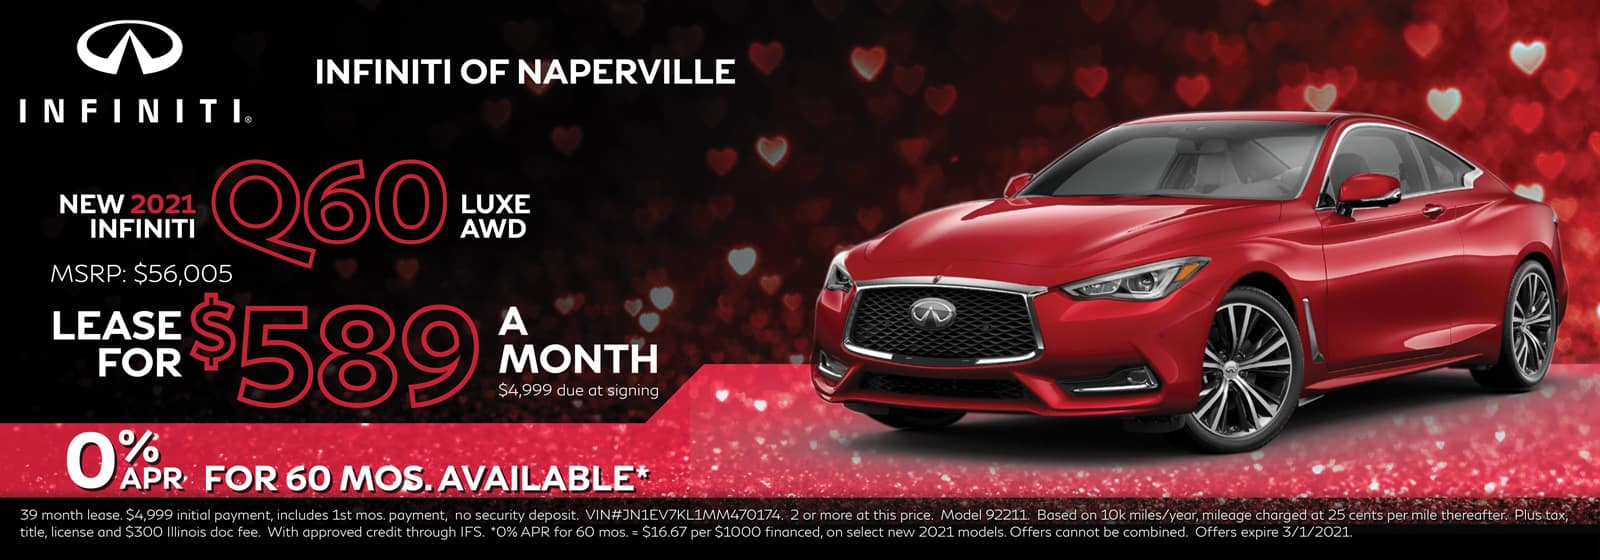 2021 INFINITI Q60 lease offer, $589/mo for 39 Months | Naperville, IL